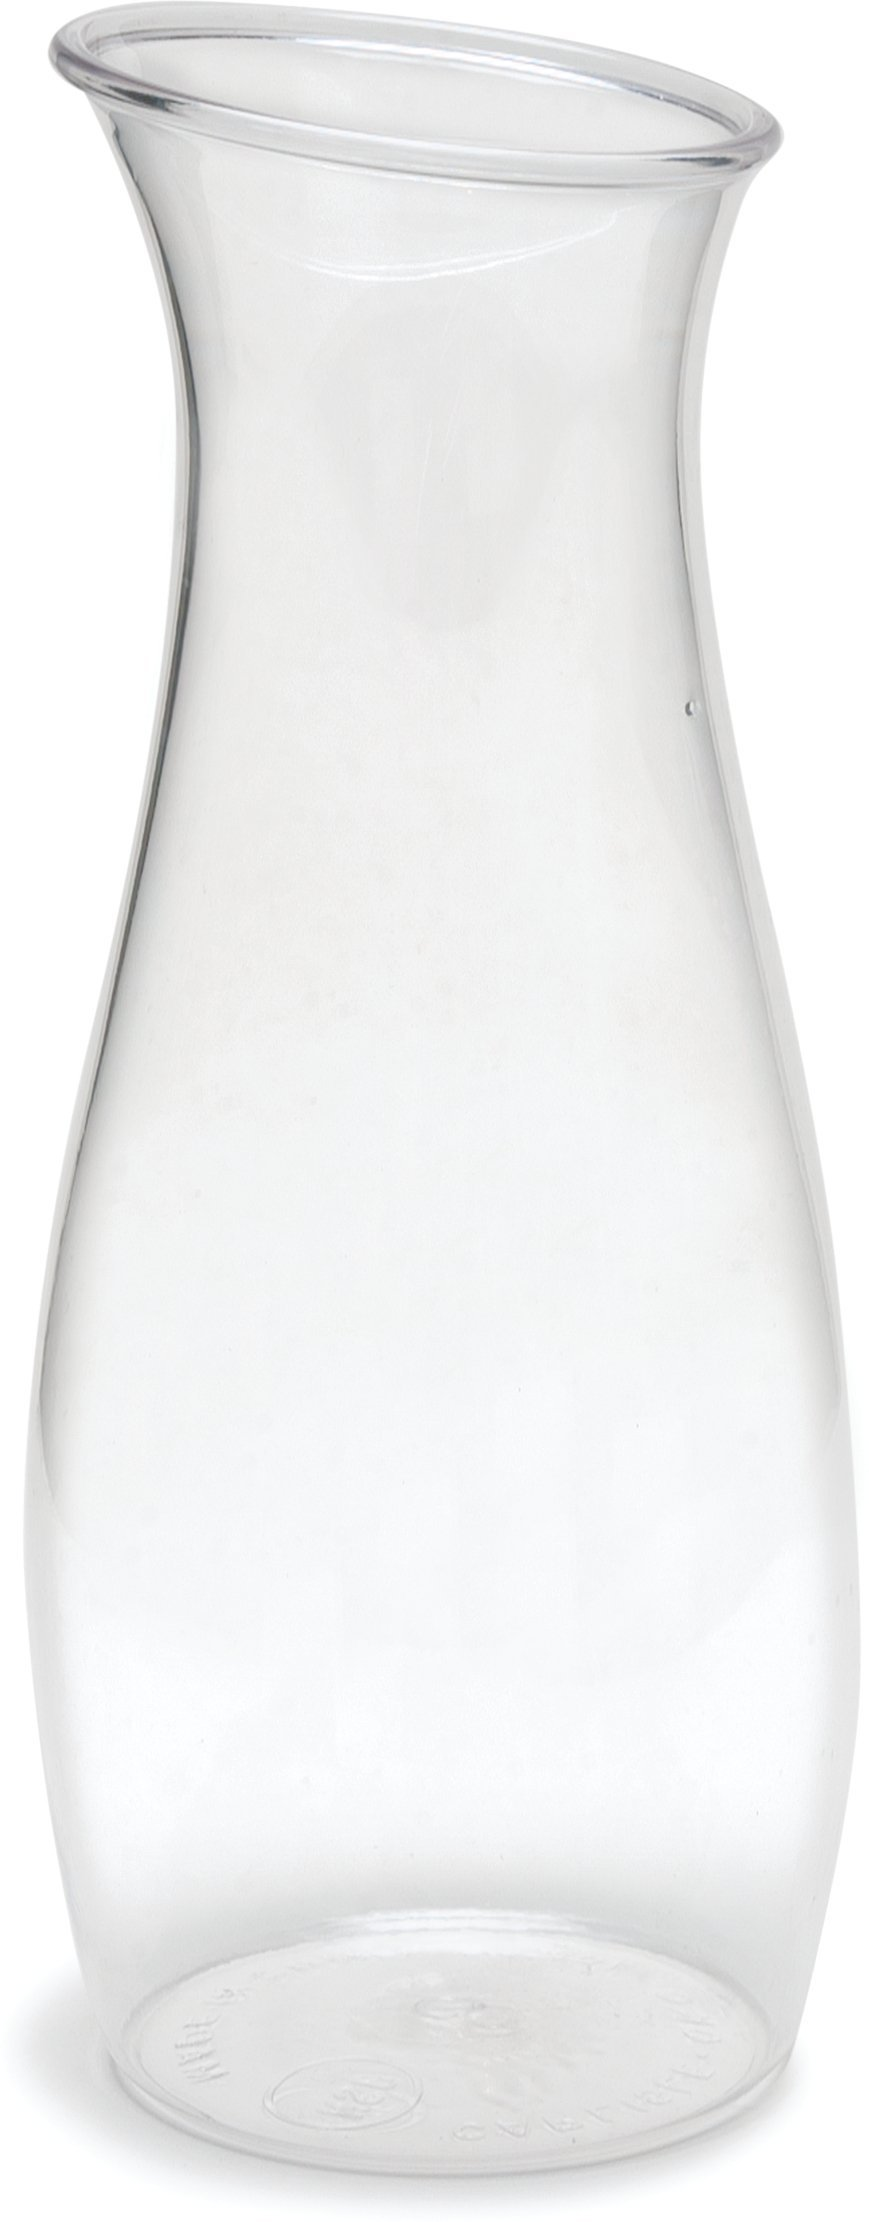 Carlisle 7090207 Cascata Carafe Juice Jar Beverage Decanter Only, Plastic, 1 L, Clear by Carlisle (Image #12)